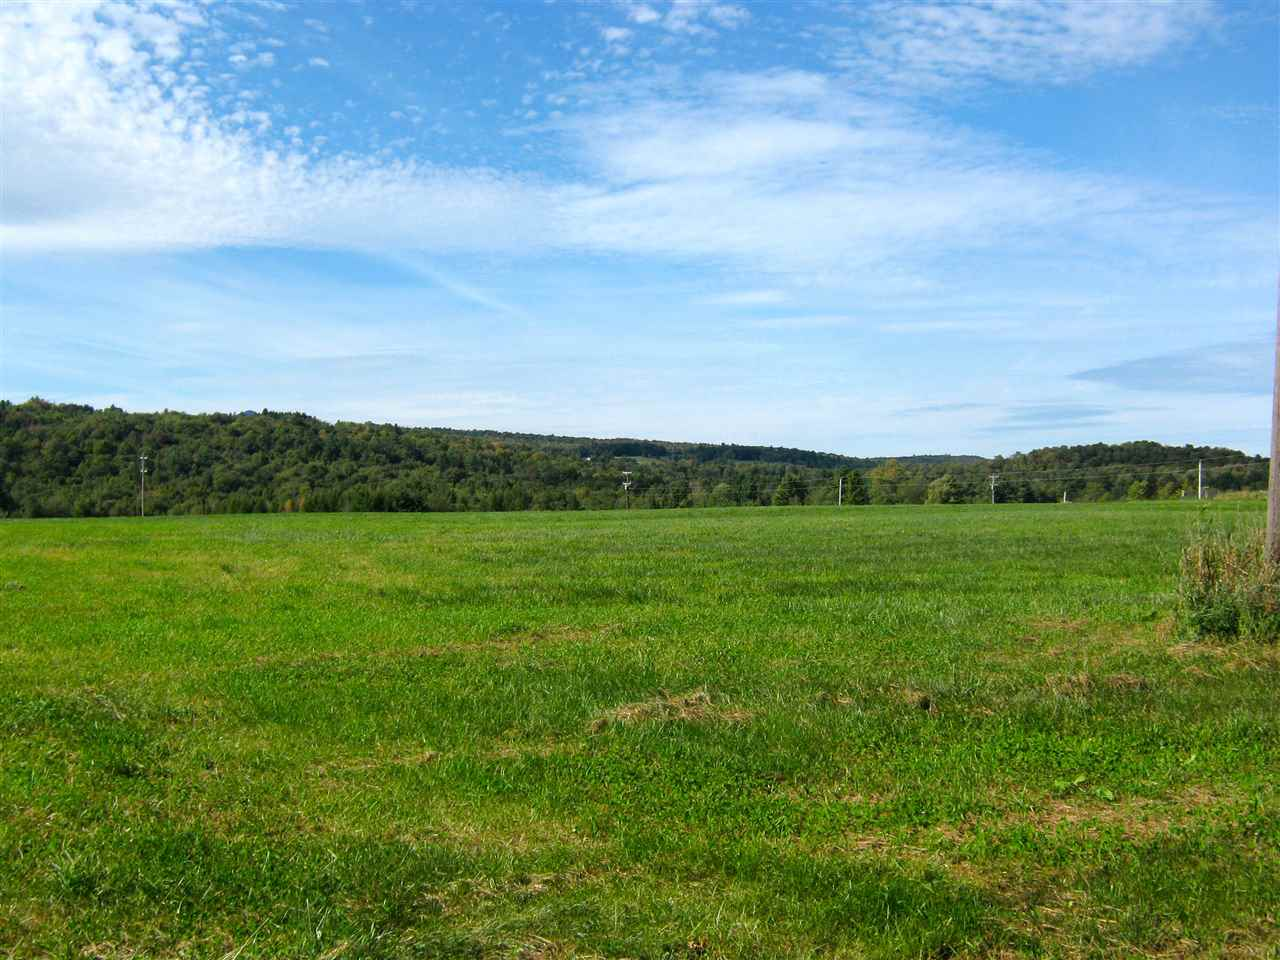 Property for sale at TBD Laporte Rd./Route 100 Highway, Morristown,  VT 05661